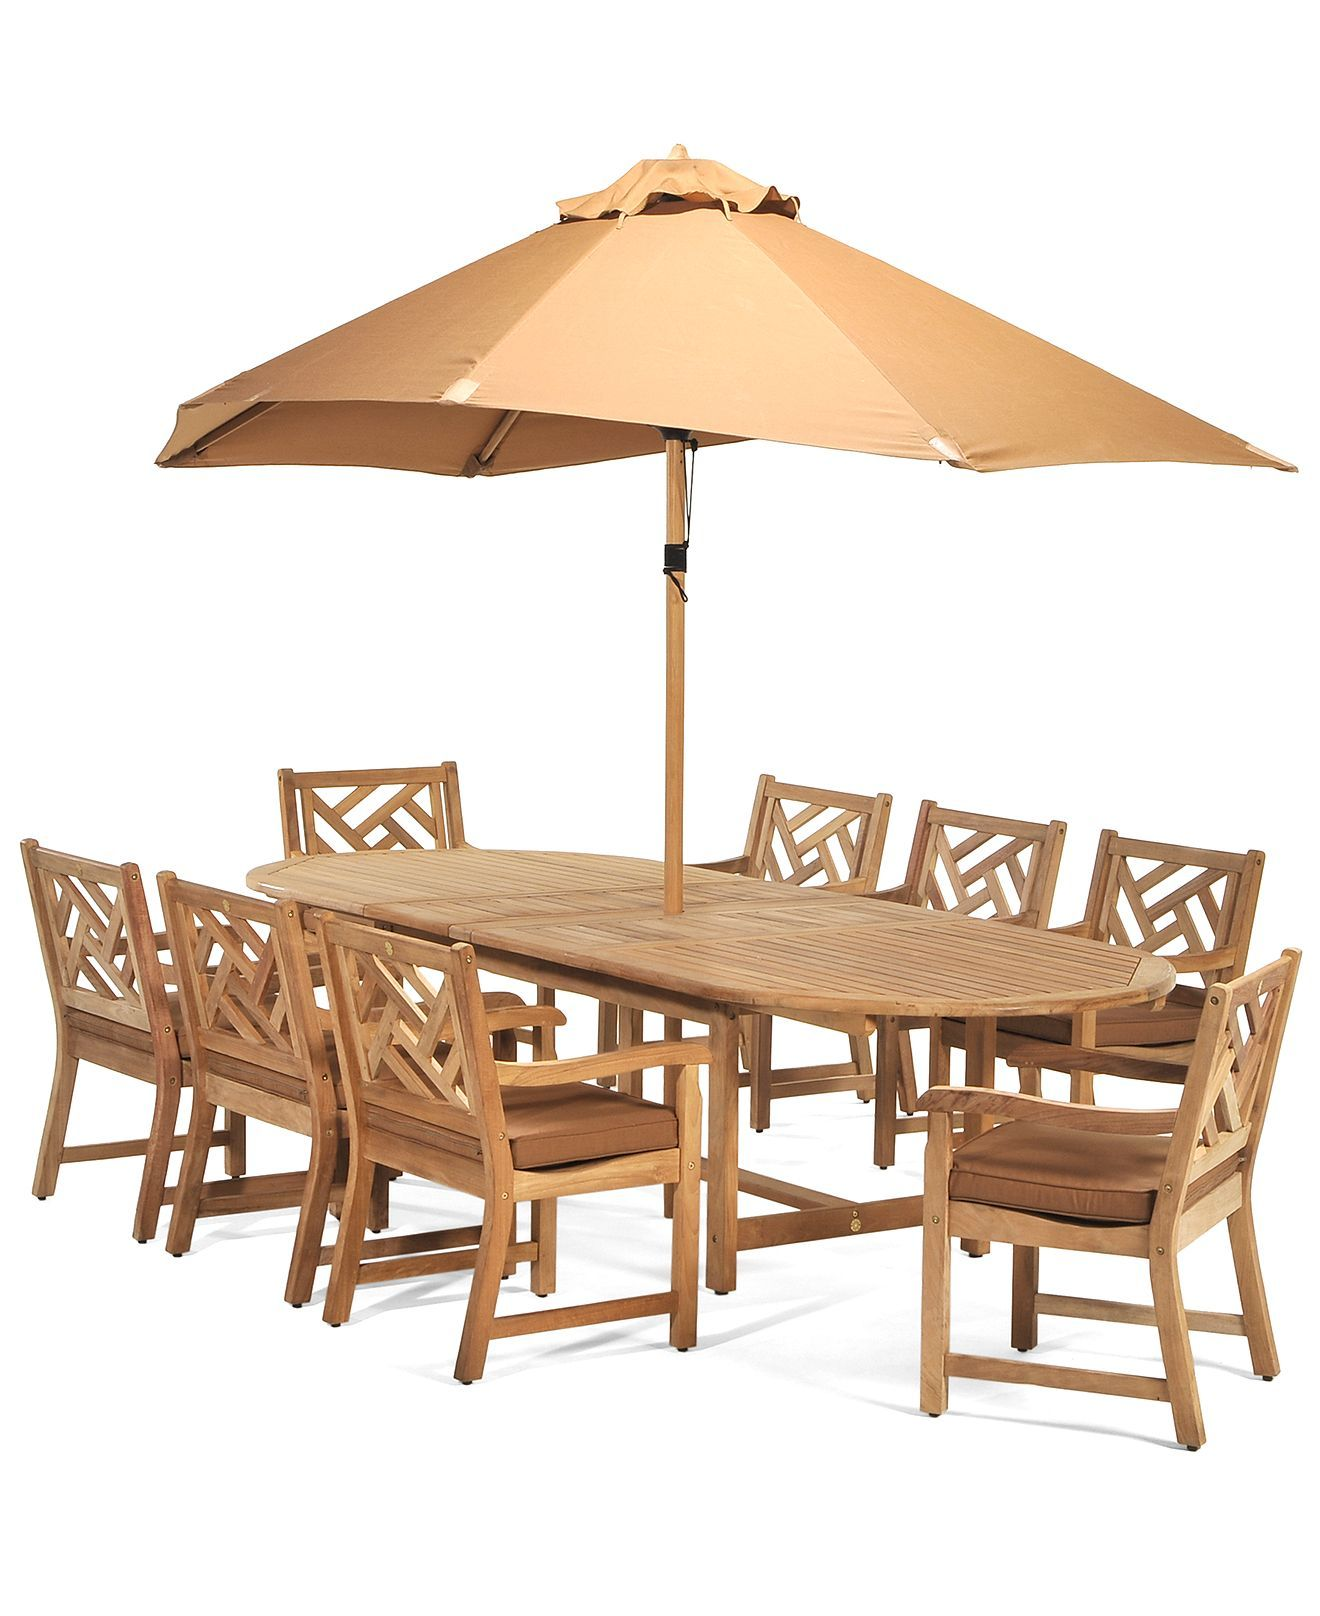 $1849 Haywood Teak Outdoor Patio Furniture 9 Piece Dining Set